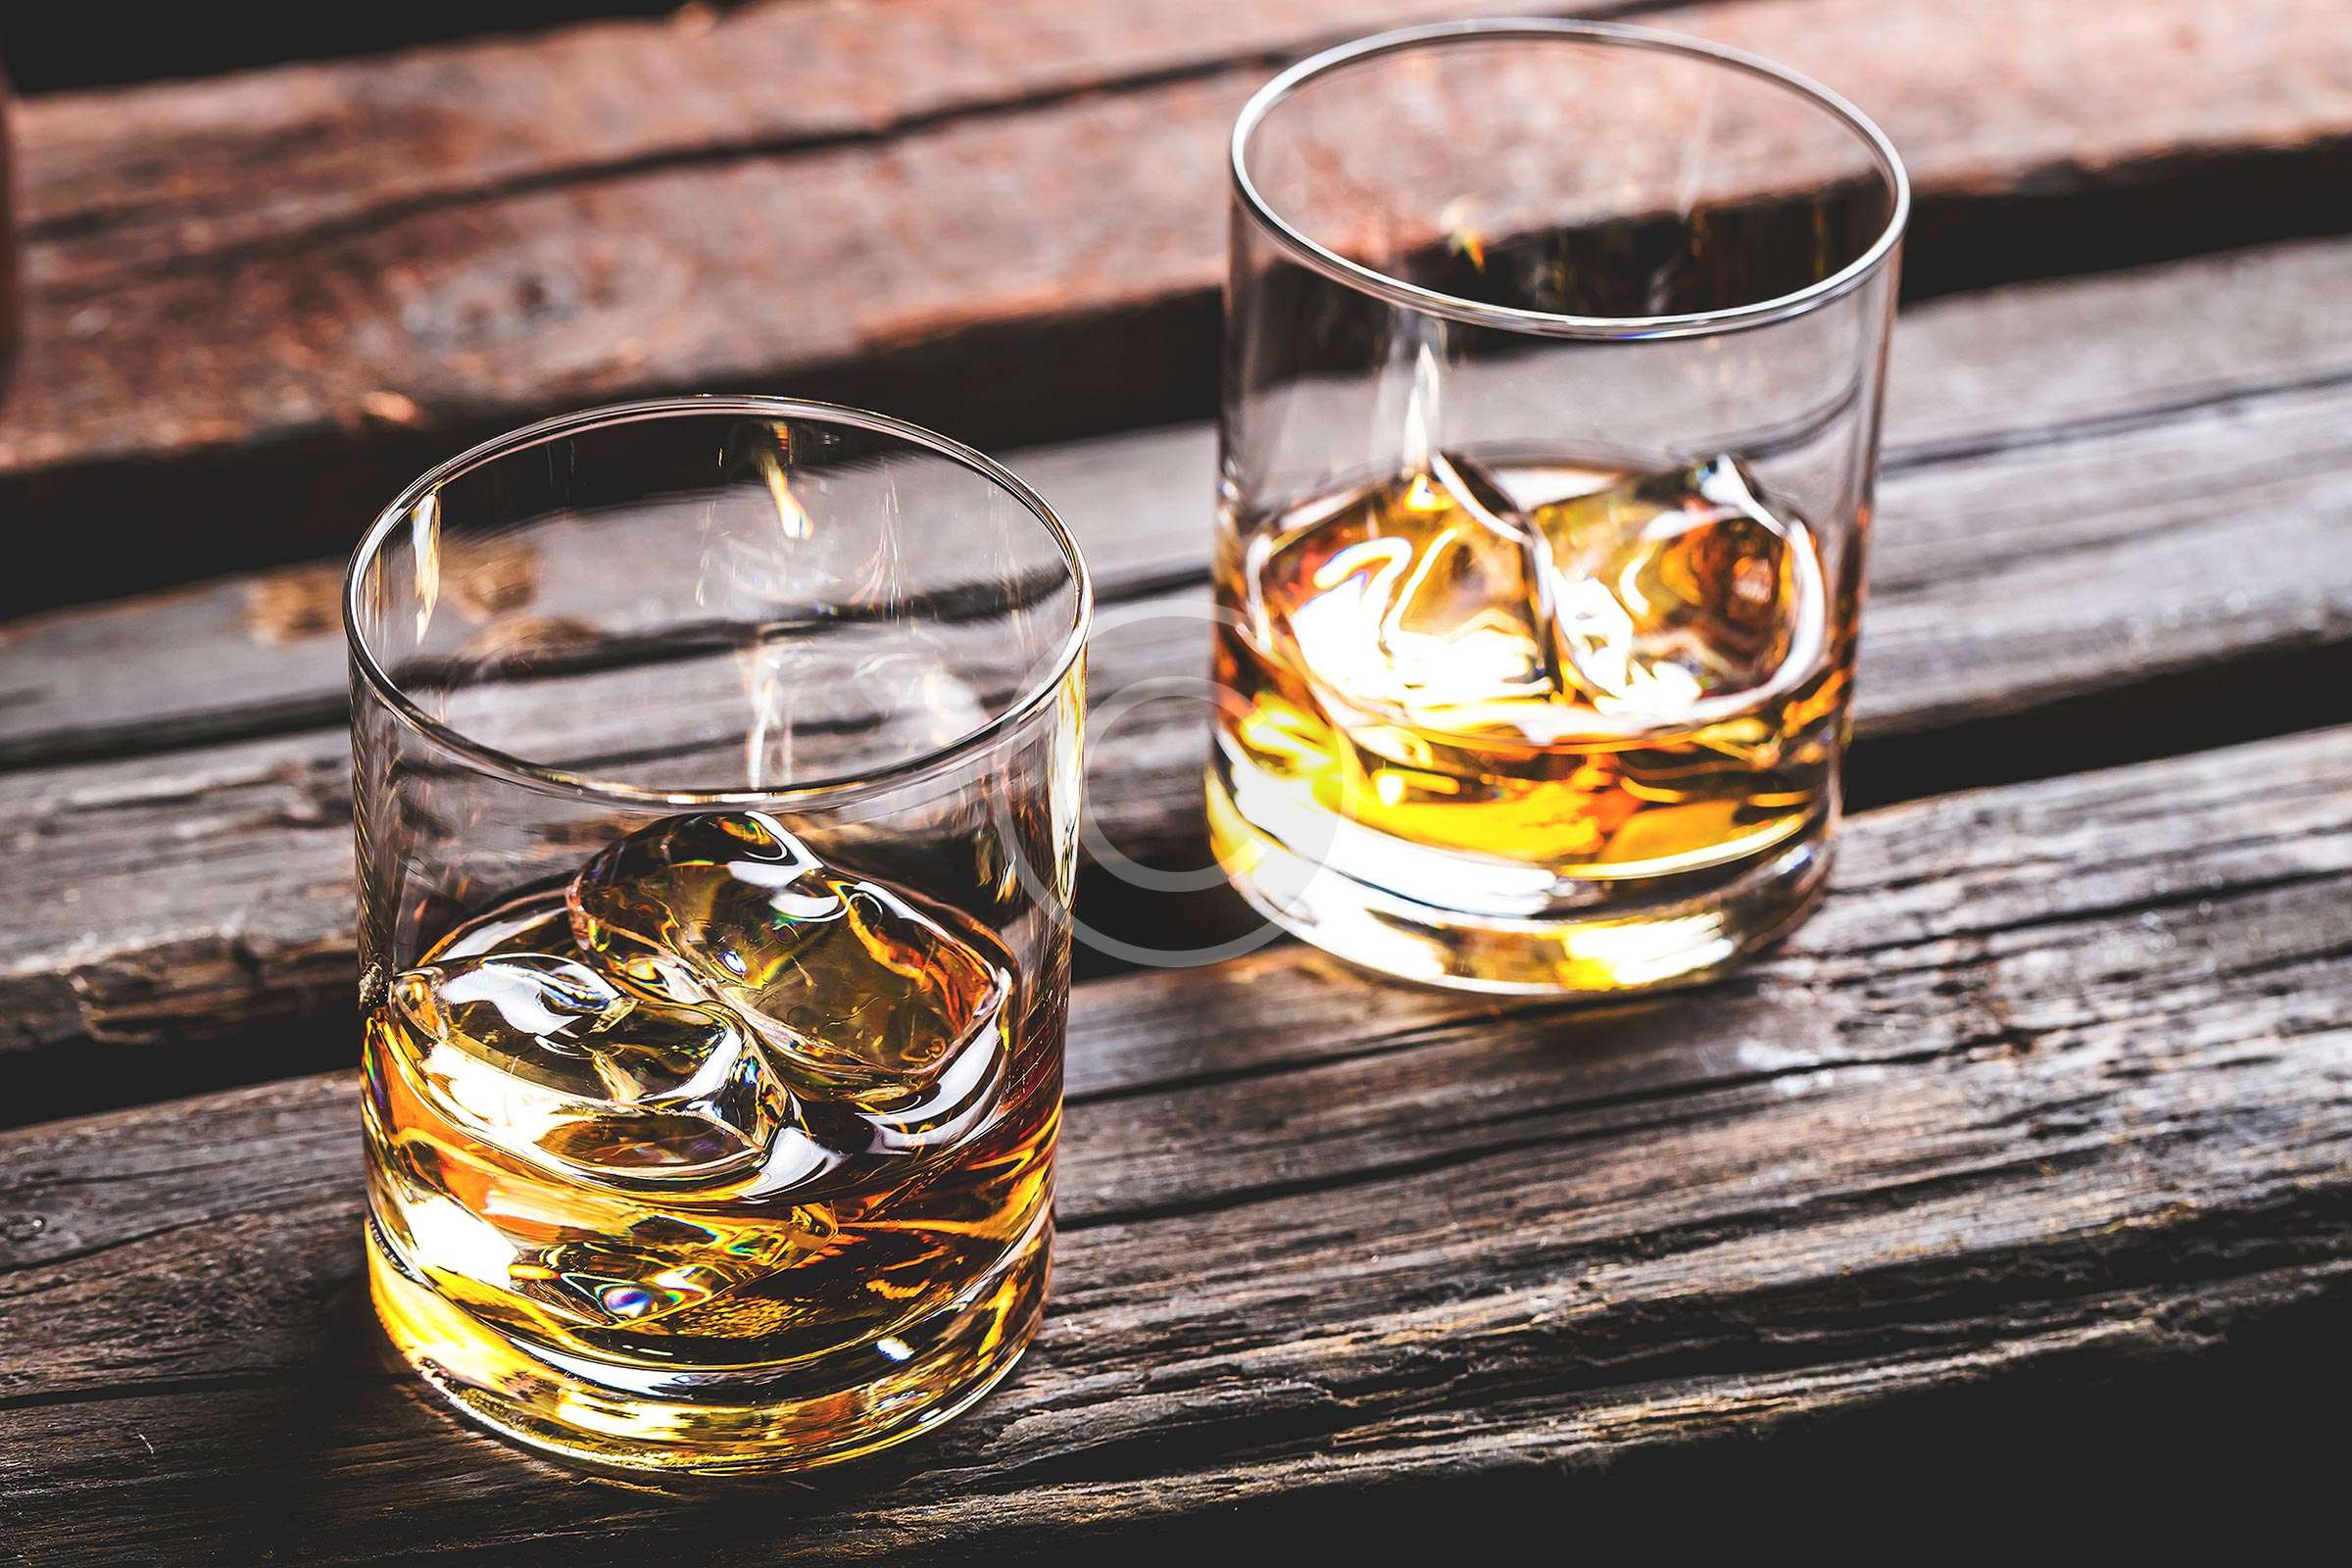 Whisky Tastes Best With a Splash of Water